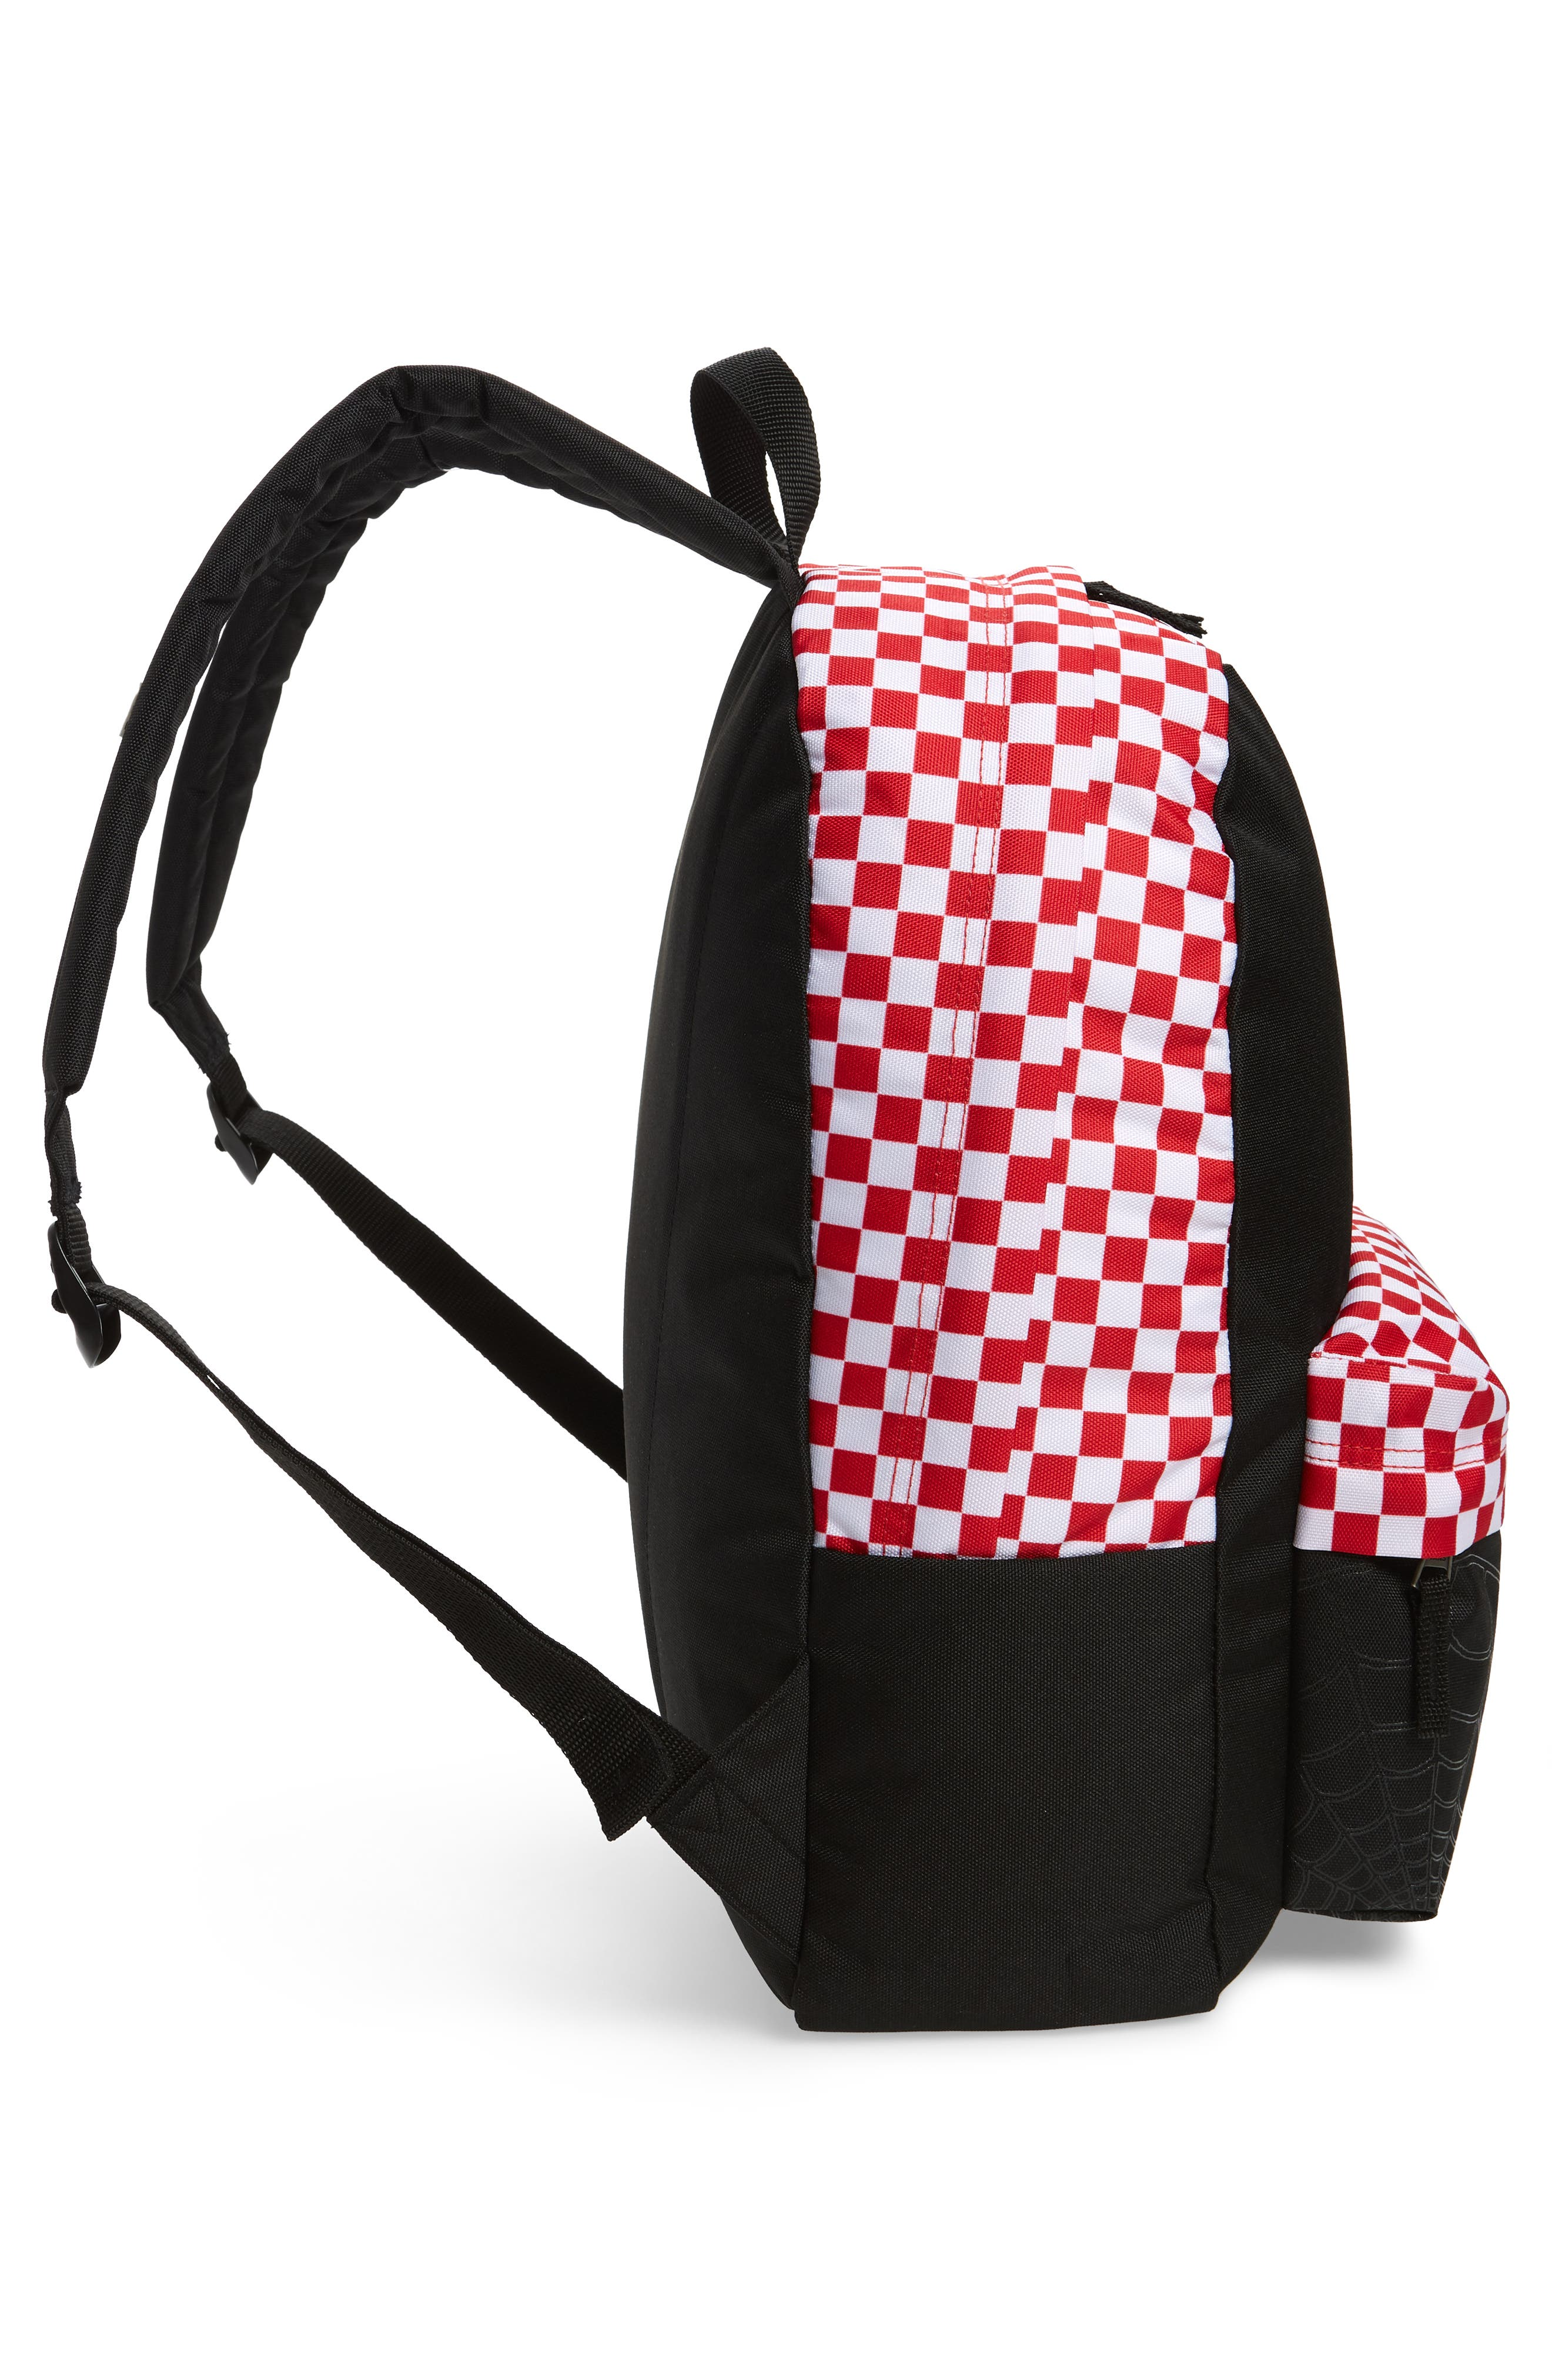 x Marvel<sup>®</sup> Spidey Realm Backpack,                             Alternate thumbnail 3, color,                             Black/ Racing Red